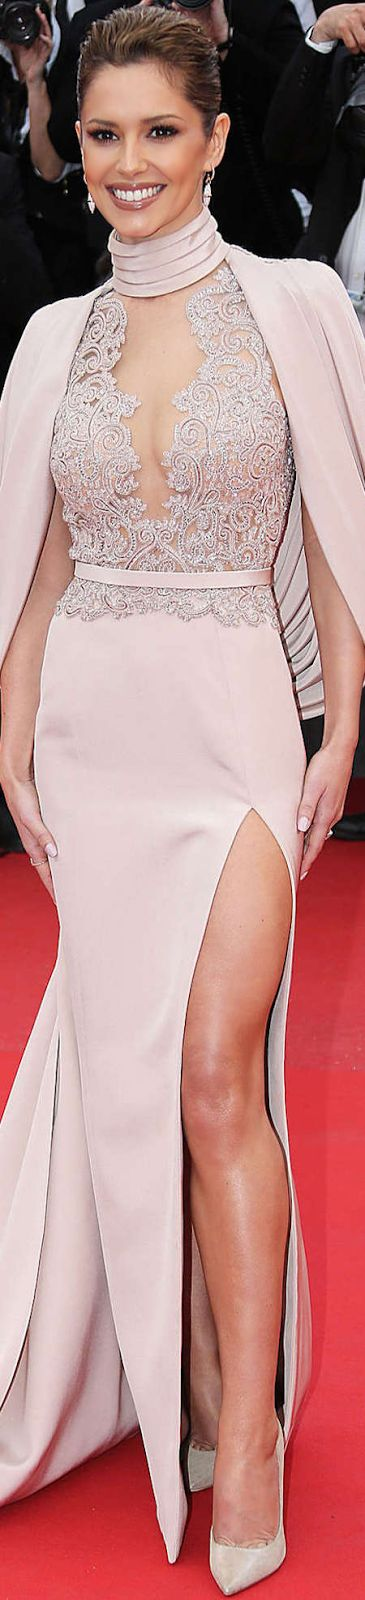 Cheryl Cole in Ralph & Russo Couture 2015 Cannes Film Festival